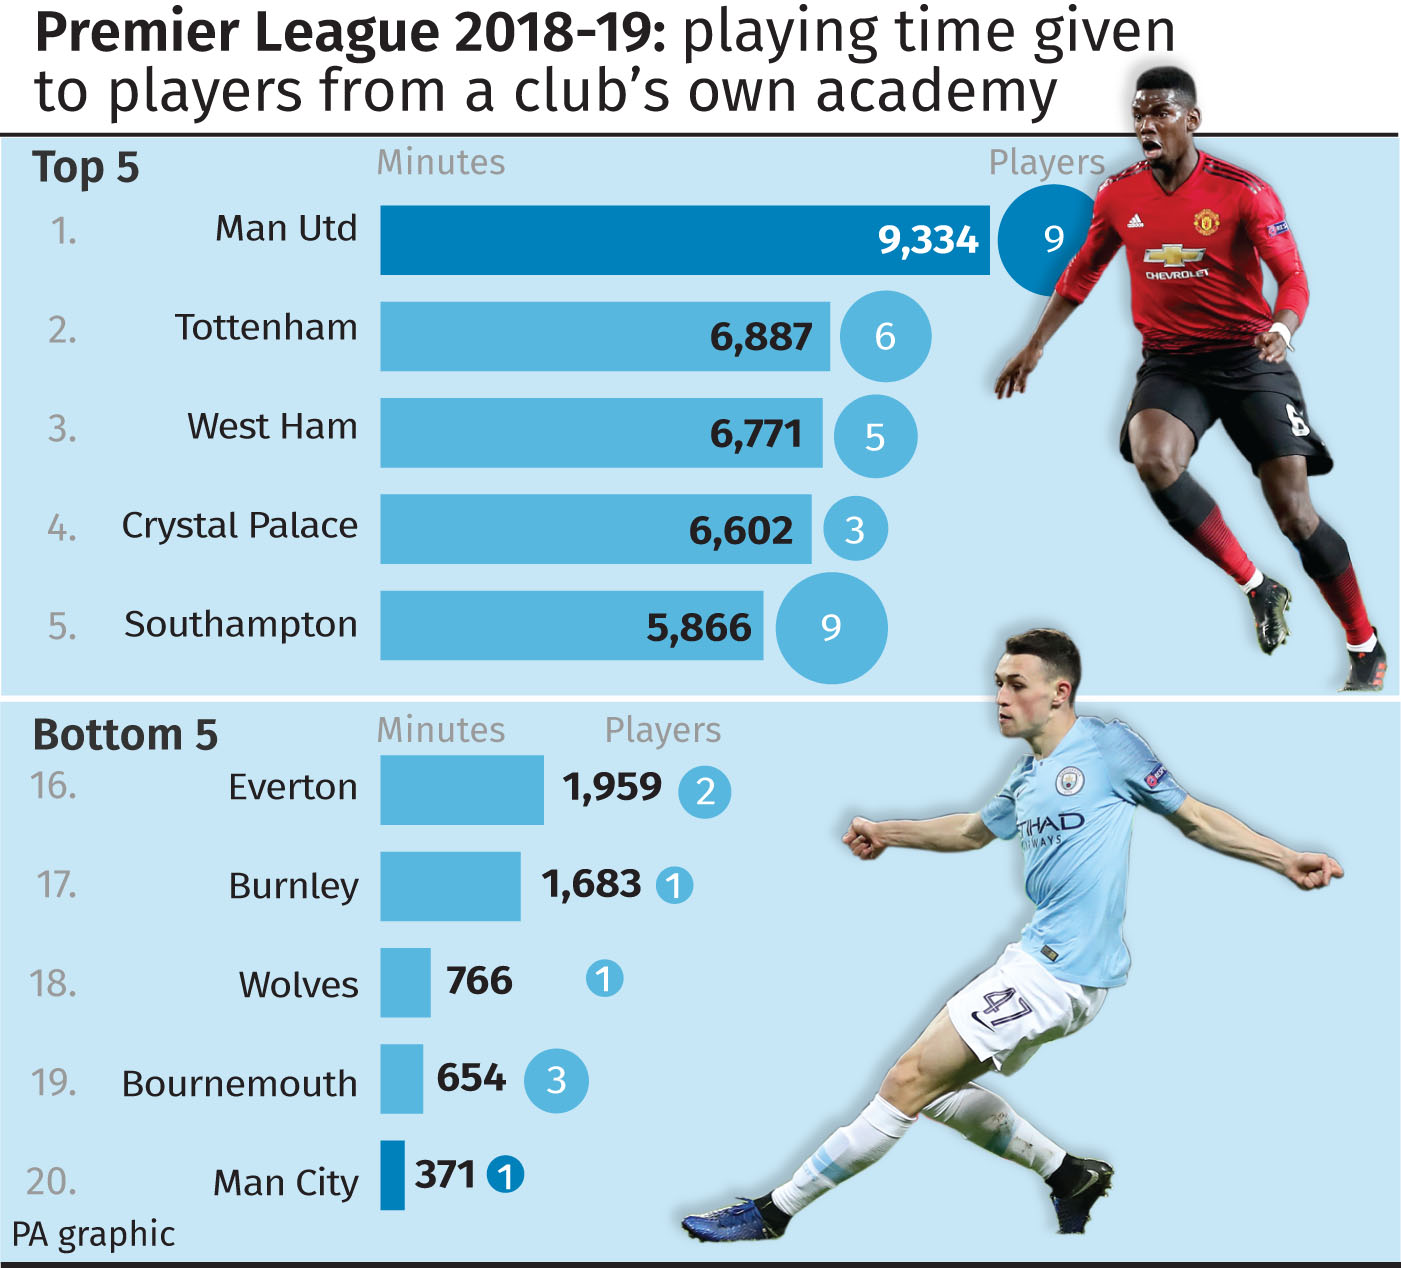 Premier League 2018-19: playing time given to graduates of a club's own academy